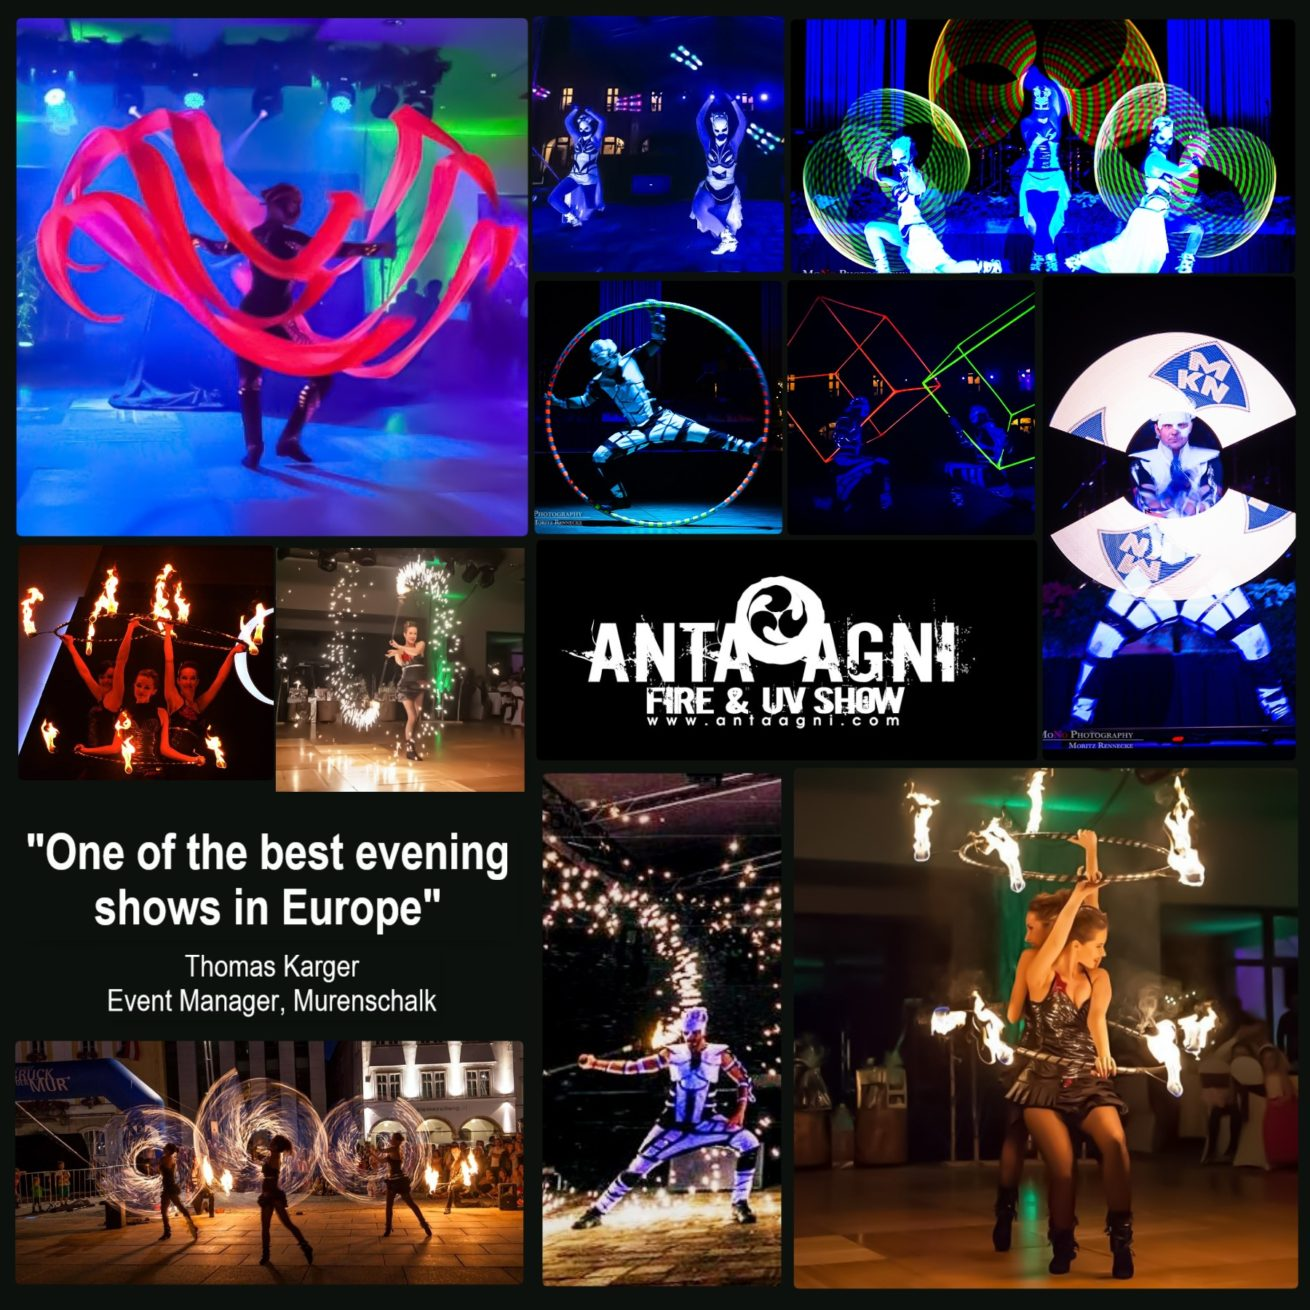 Anta Agni Fire and UV Light Show Events Clients